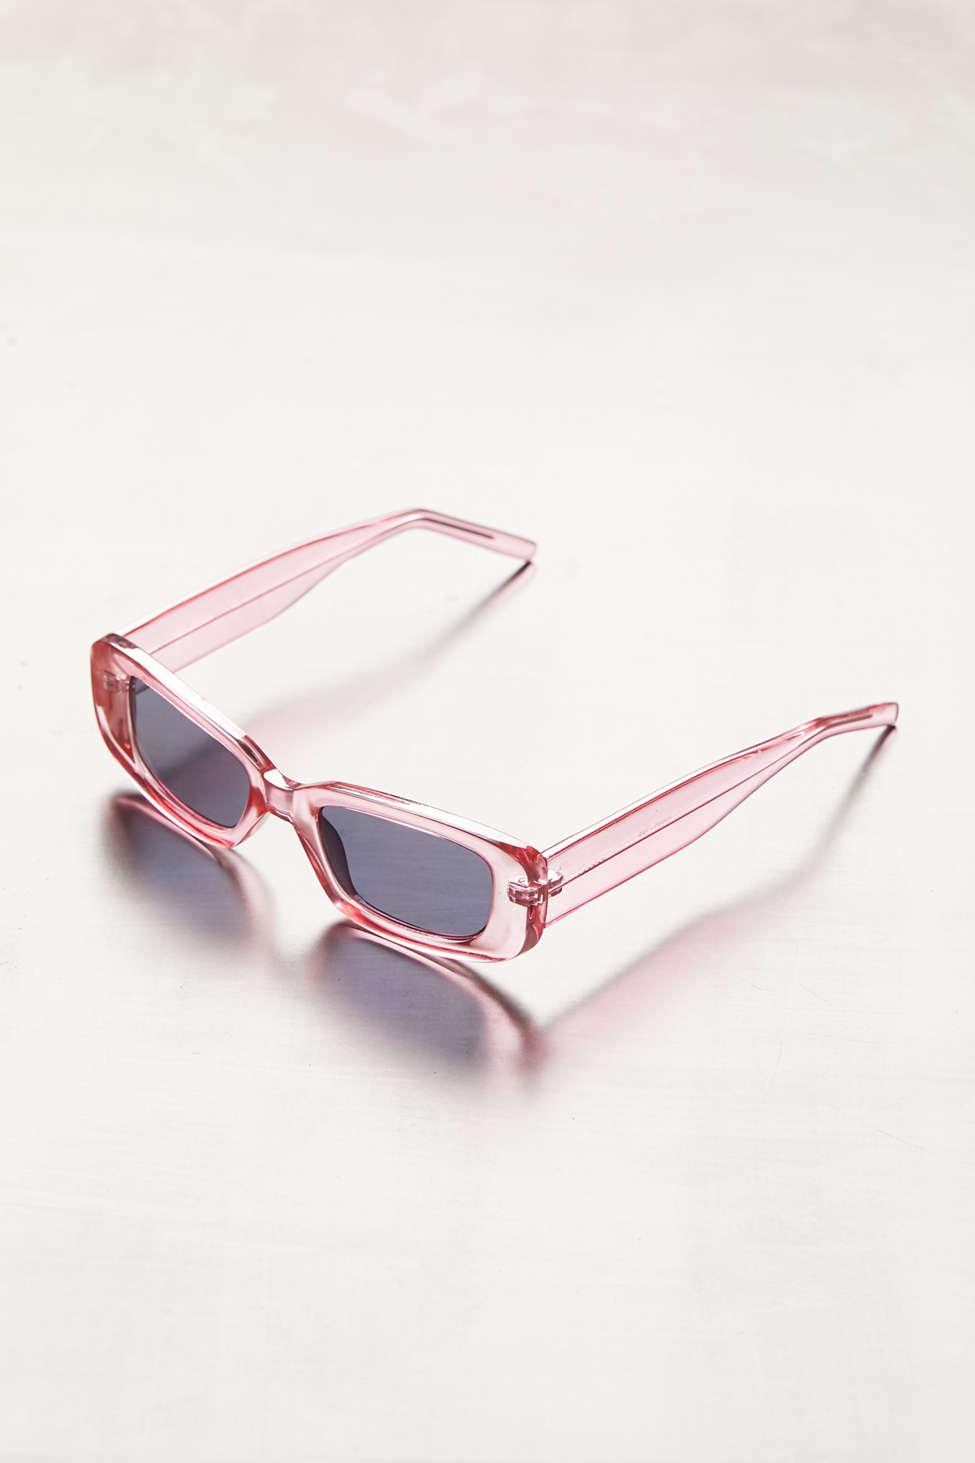 7e08c7fc26 Lyst - Urban Outfitters Reese Slim Rectangle Sunglasses in Pink